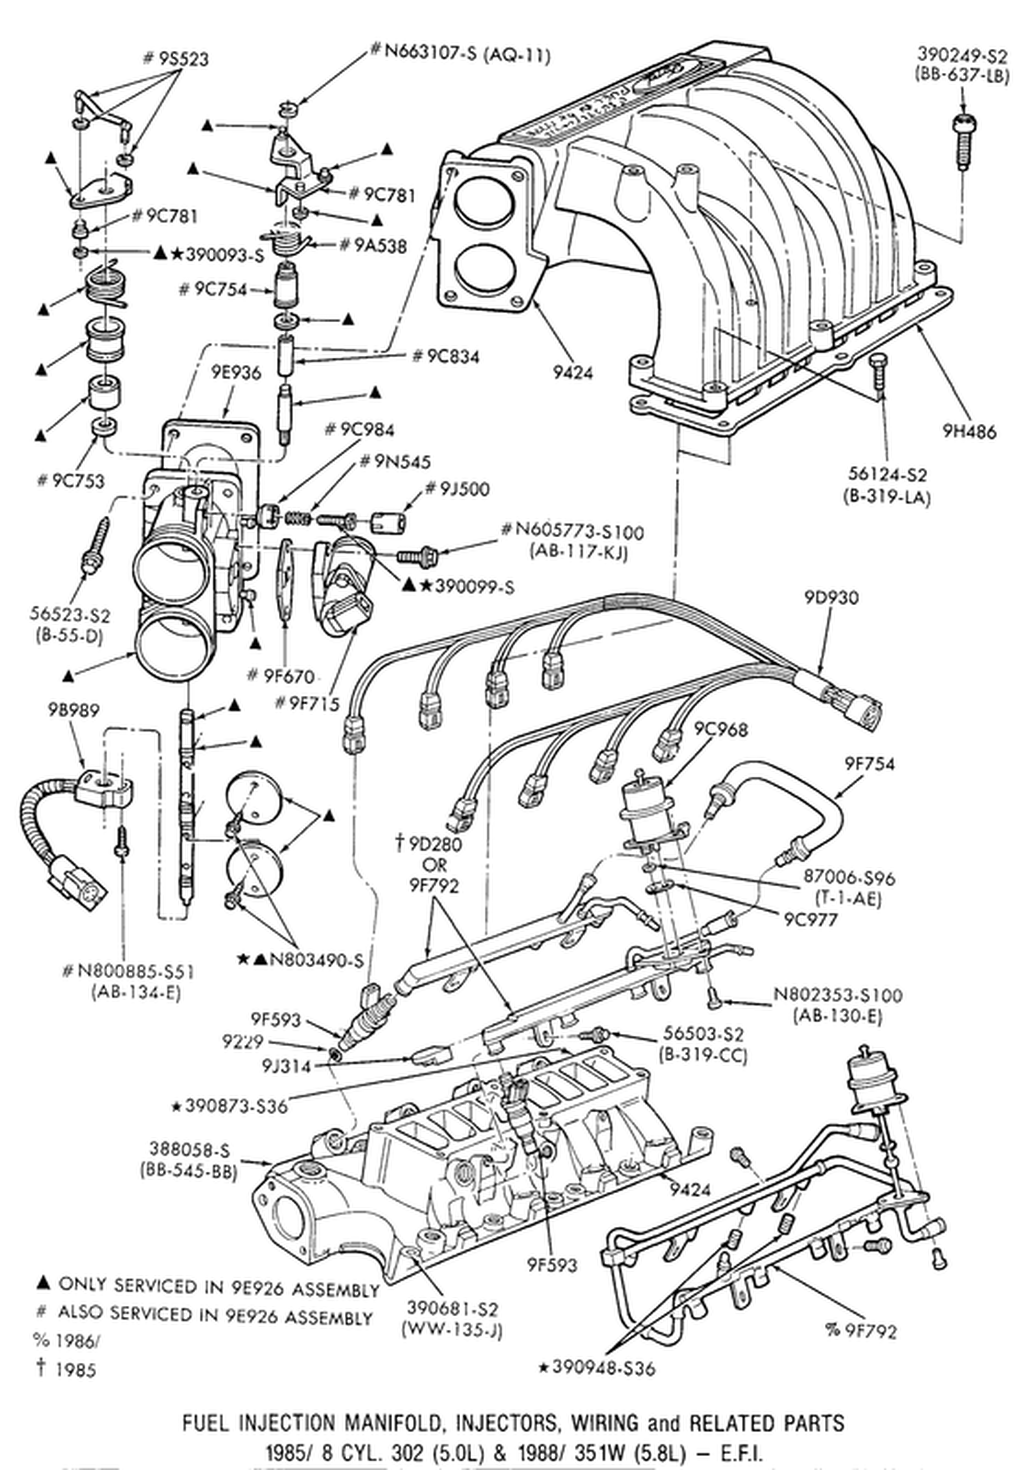 small resolution of air cleaner illustrations 1980 84 f series bronco 1983 84 f series diesel 1983 87 f350 chassis cab drw 1985 f series 302 w efi